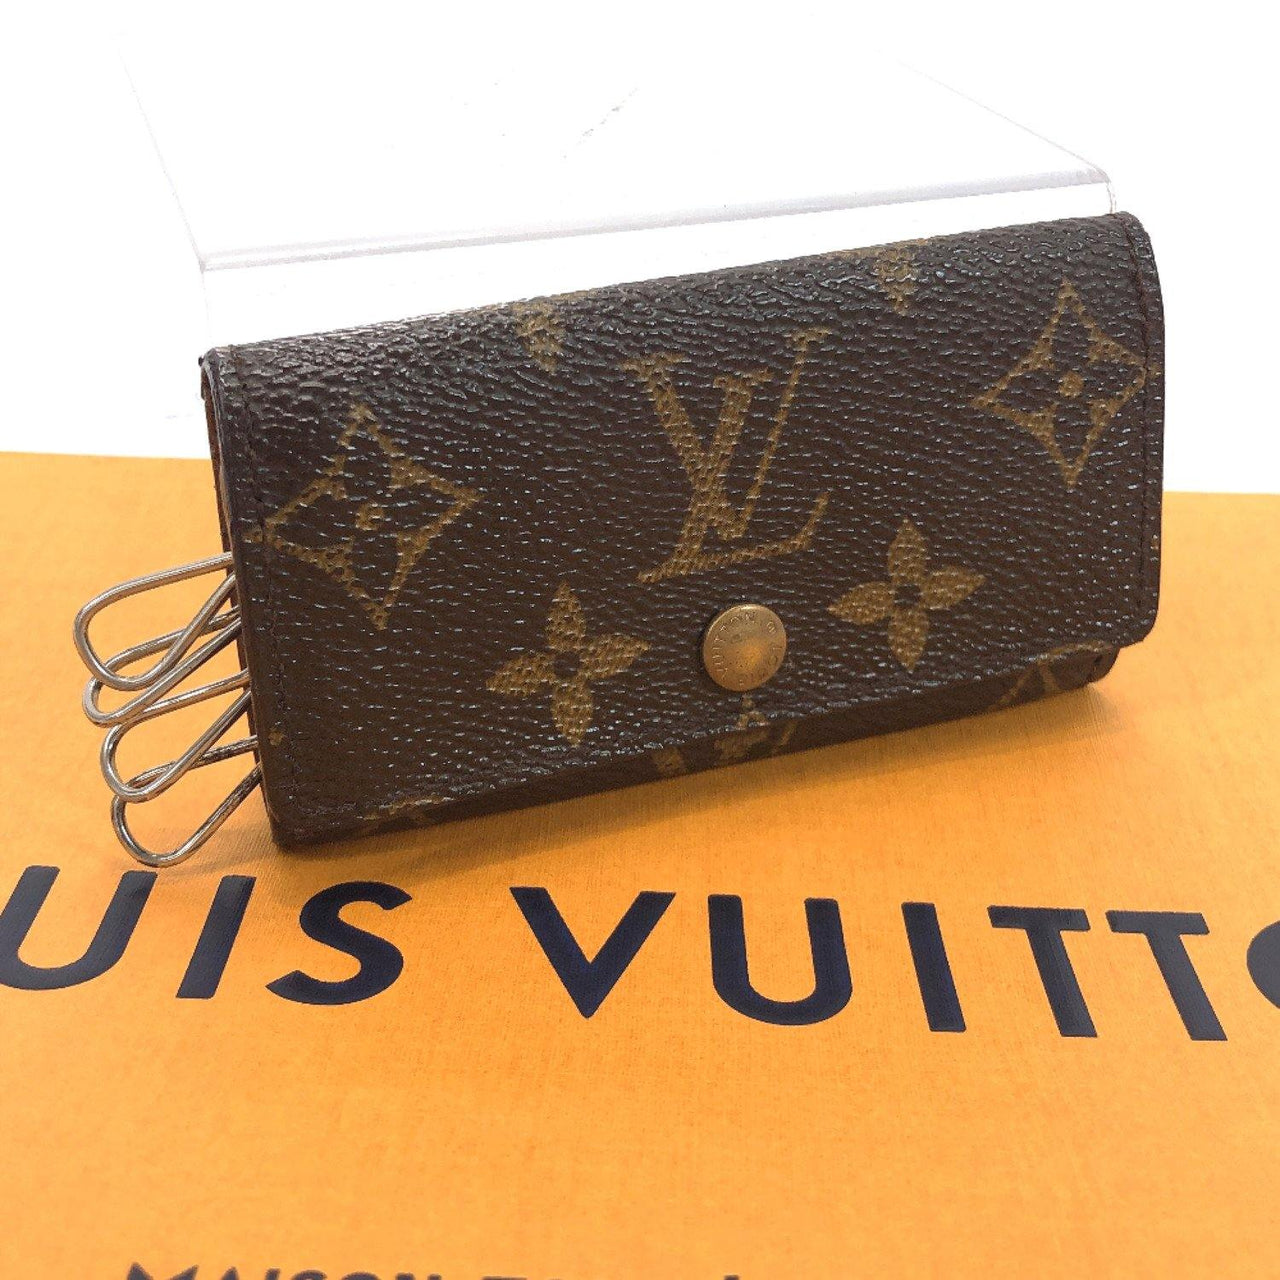 LOUIS VUITTON key holder M62631 Multicles4 4 hooks Monogram canvas Brown unisex Used - JP-BRANDS.com